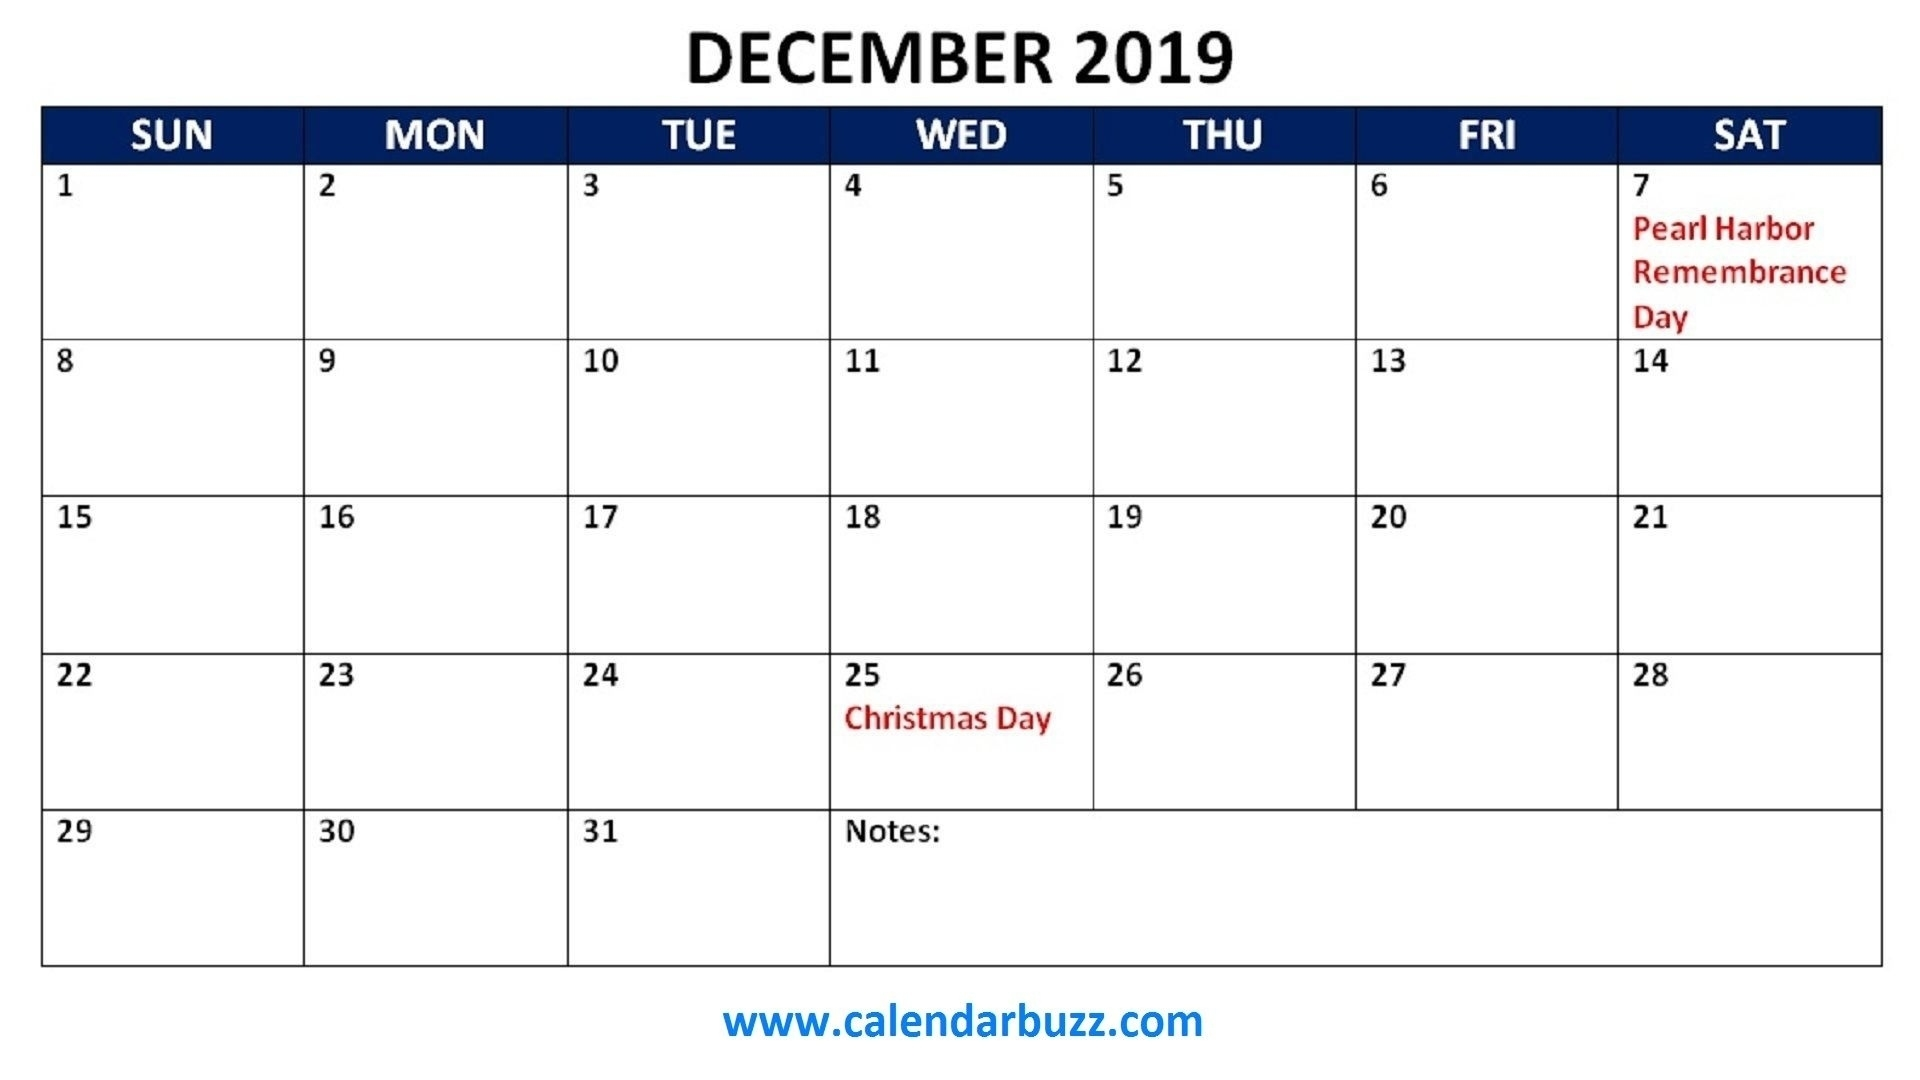 Calendar Holidays December 2019 • Printable Blank Calendar Template Calendar Holidays In December